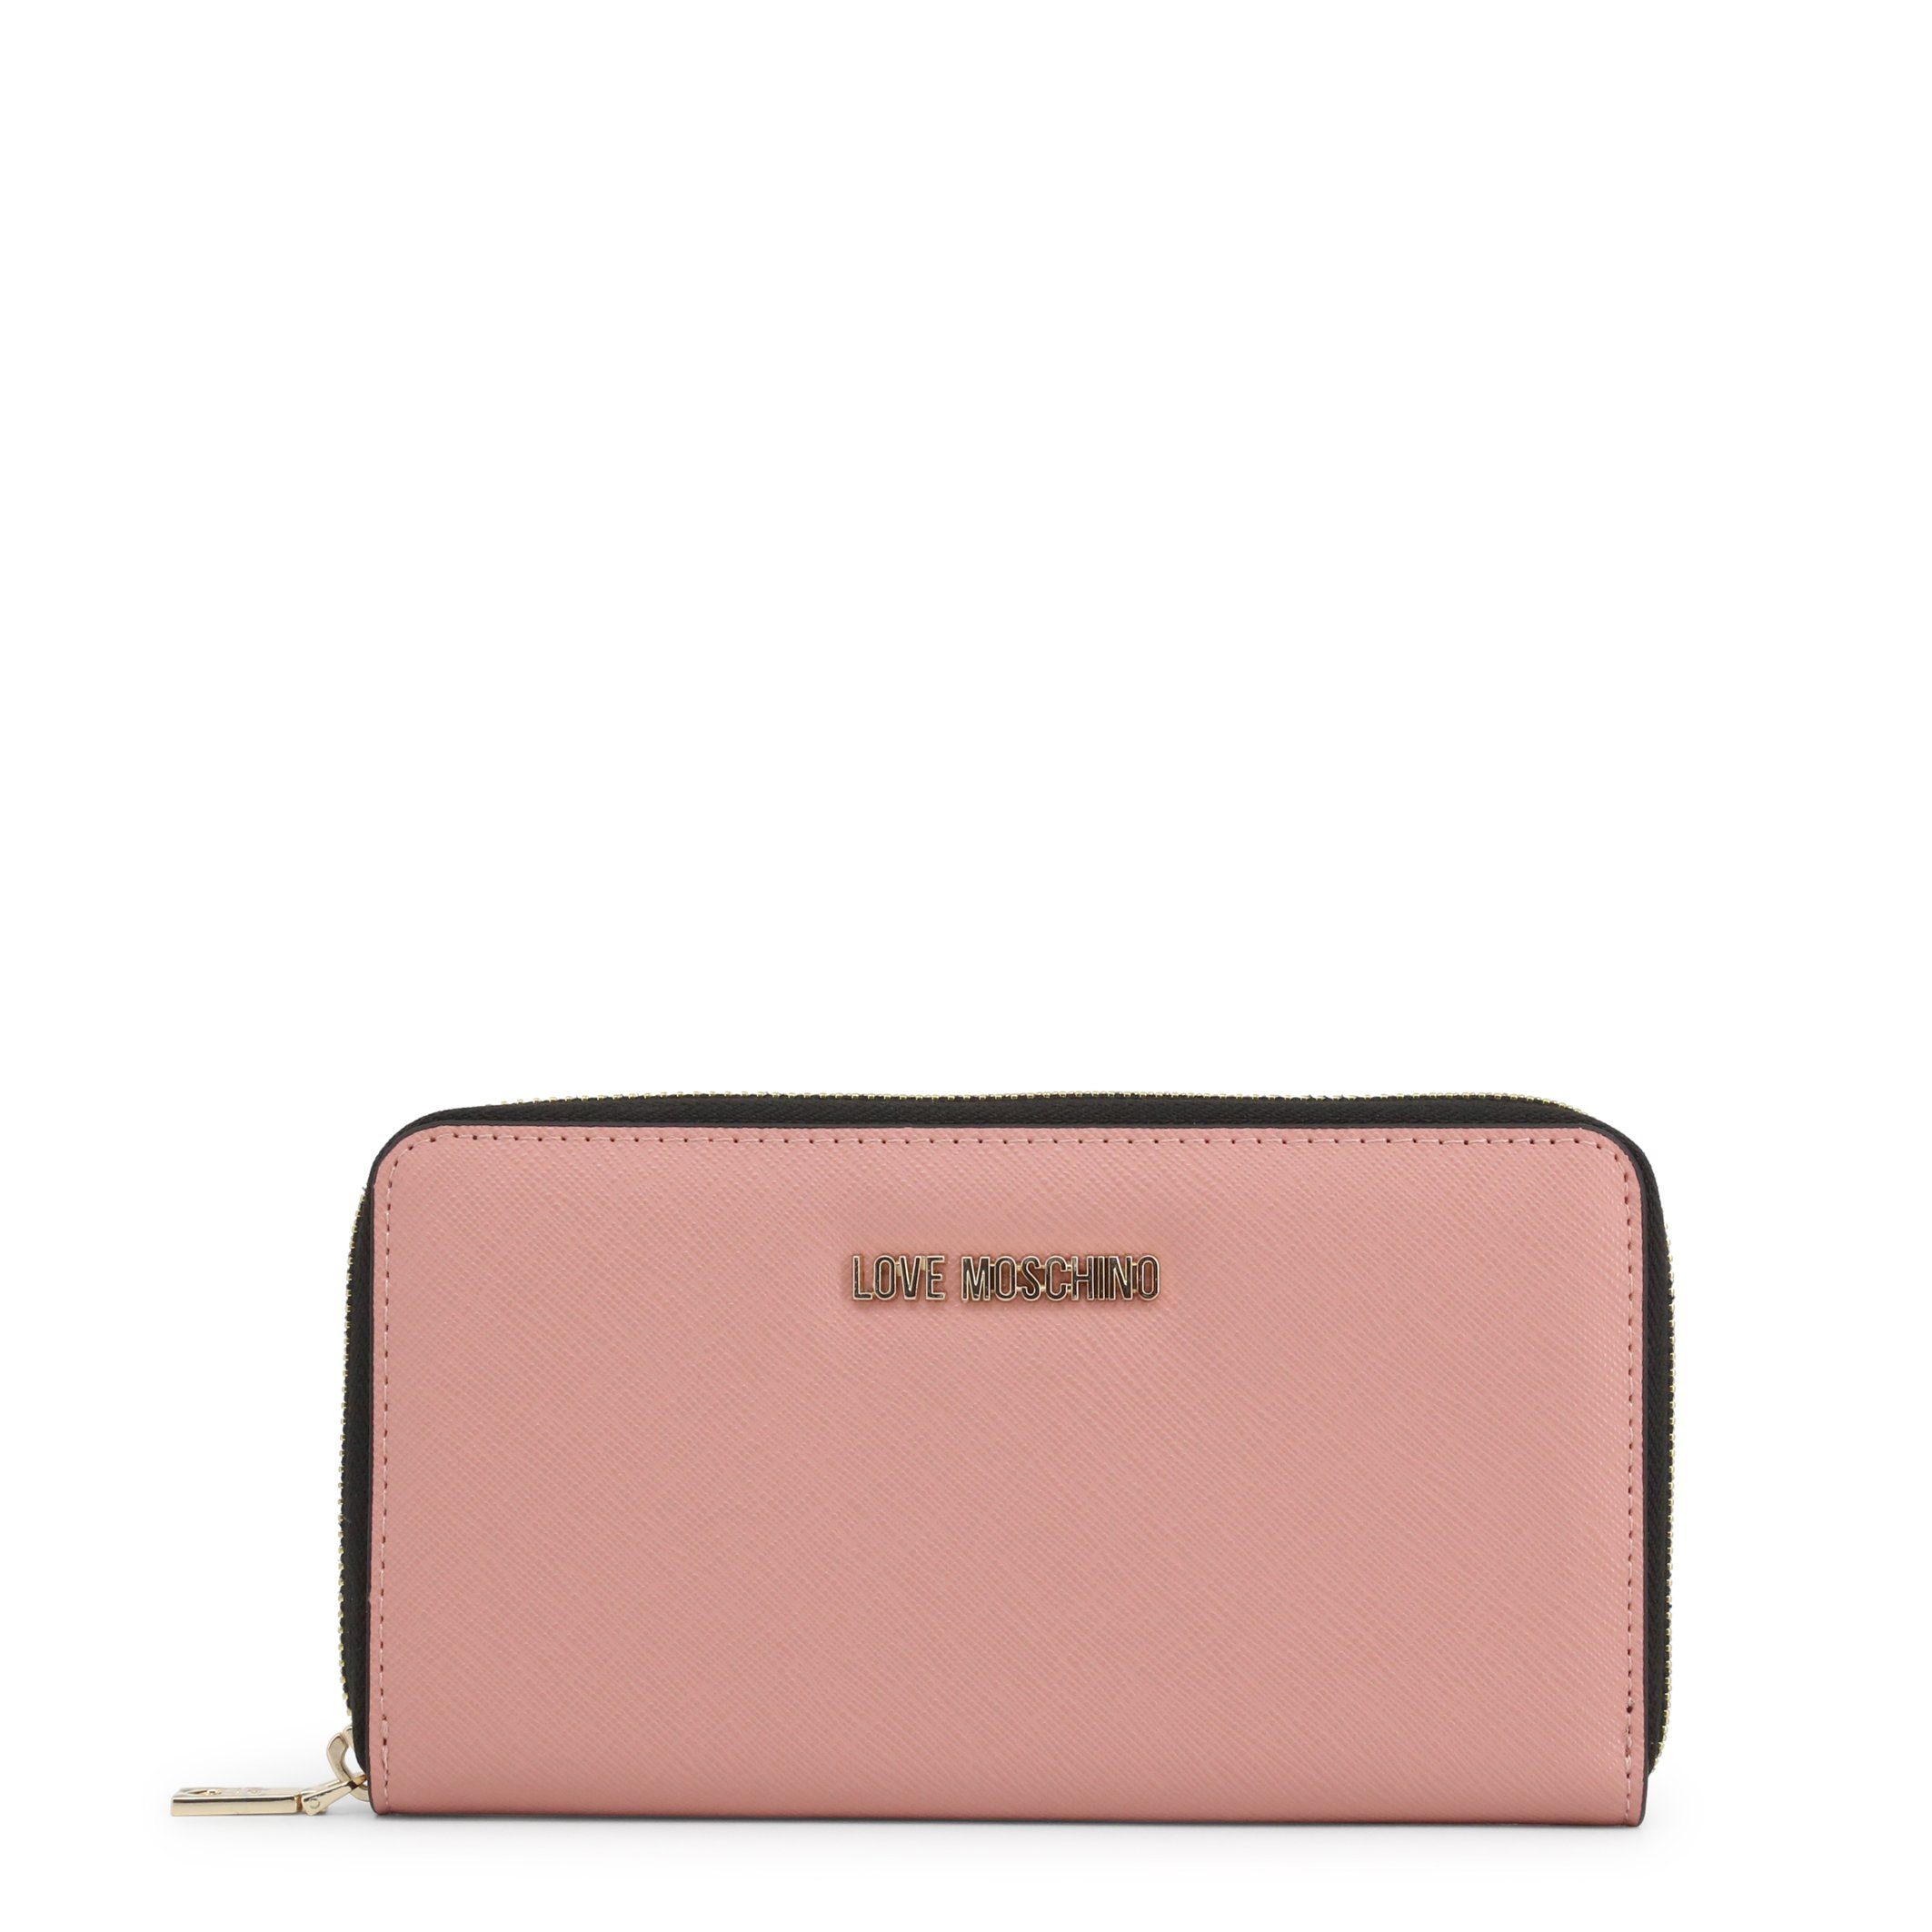 Love Moschino Women's Wallet Various Colours JC5552PP16LQ0 - pink NOSIZE